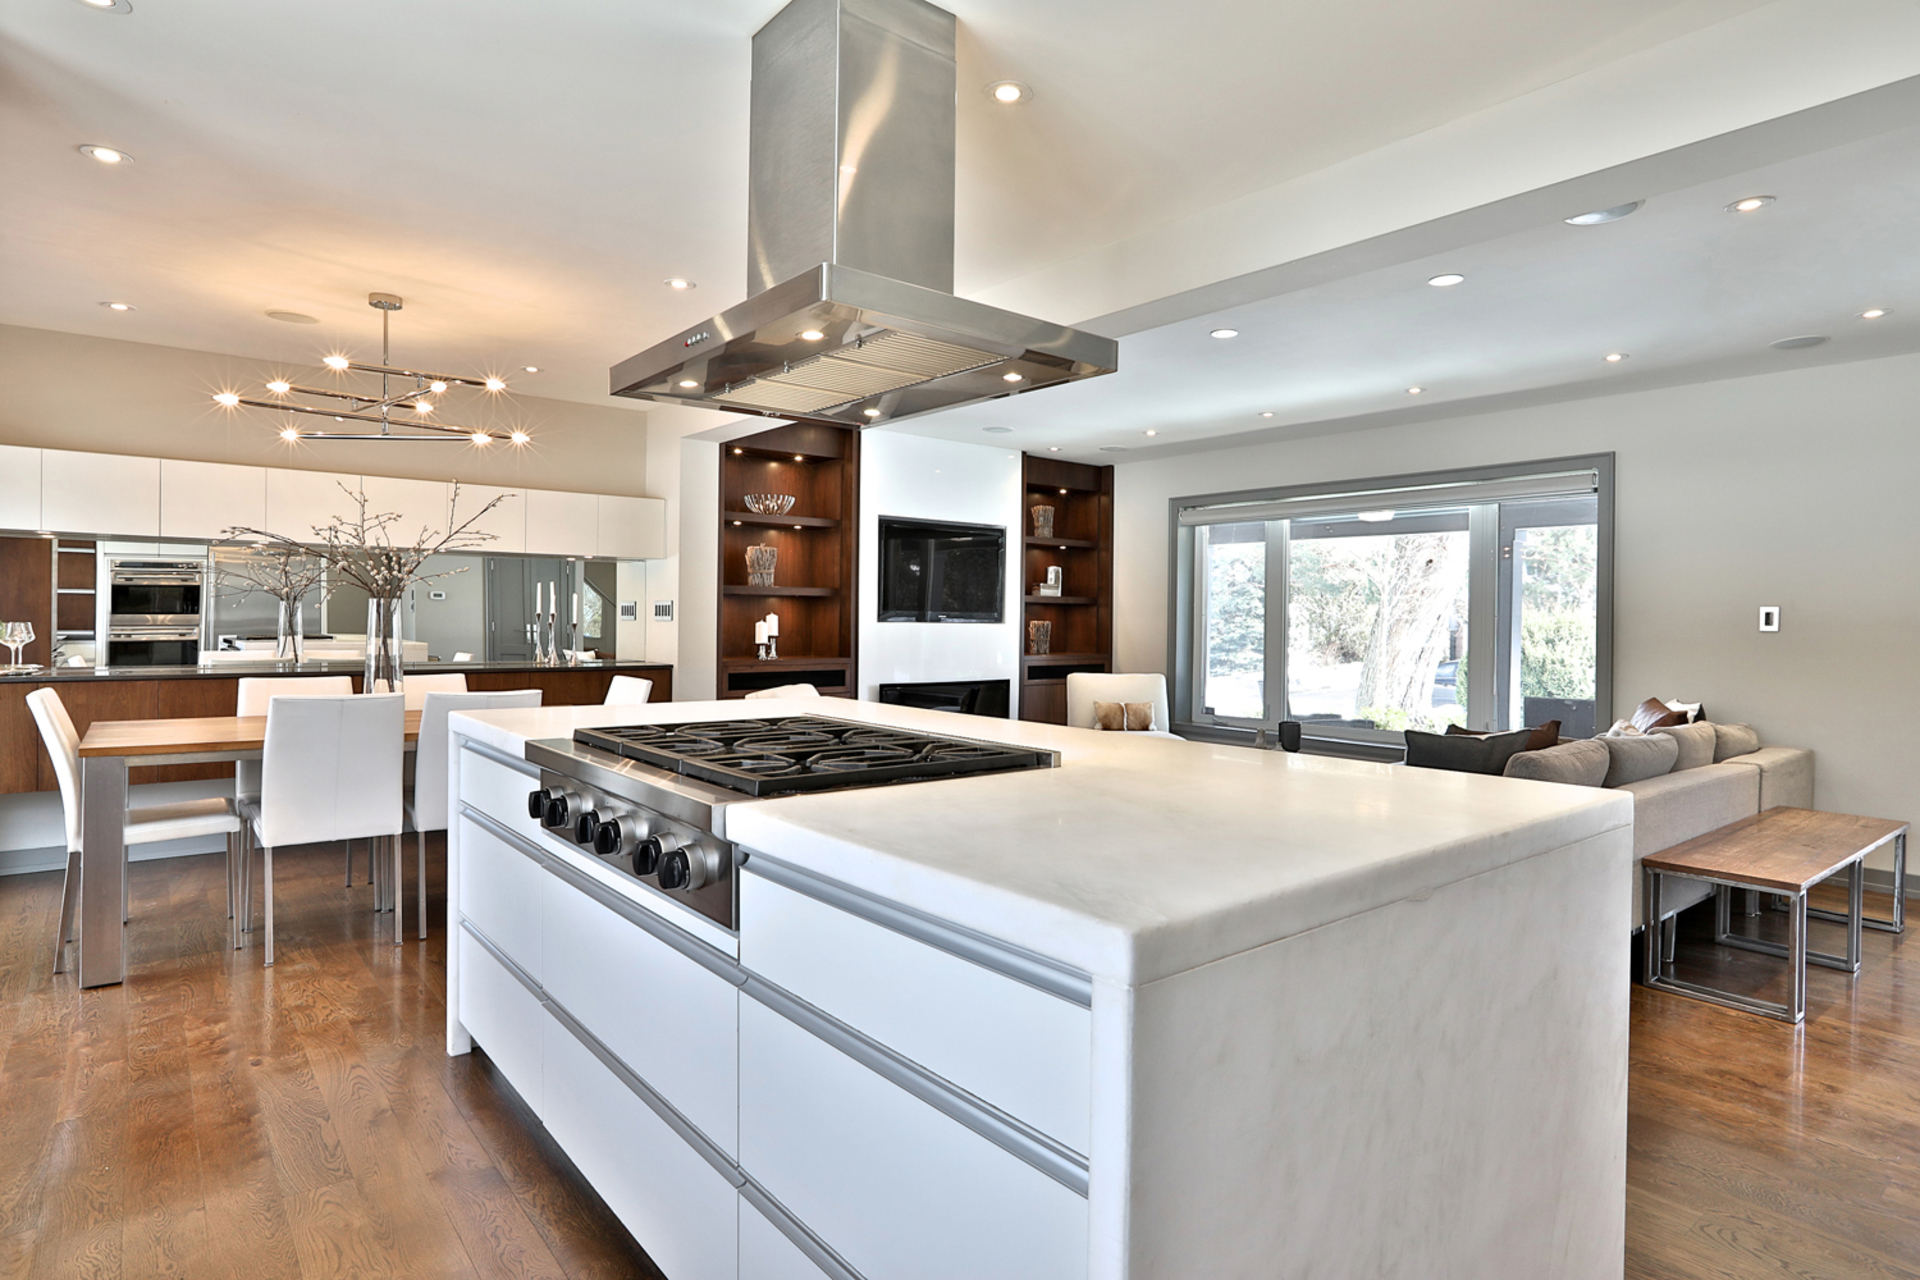 Kitchen at 50 Hopperton Drive, St. Andrew-Windfields, Toronto